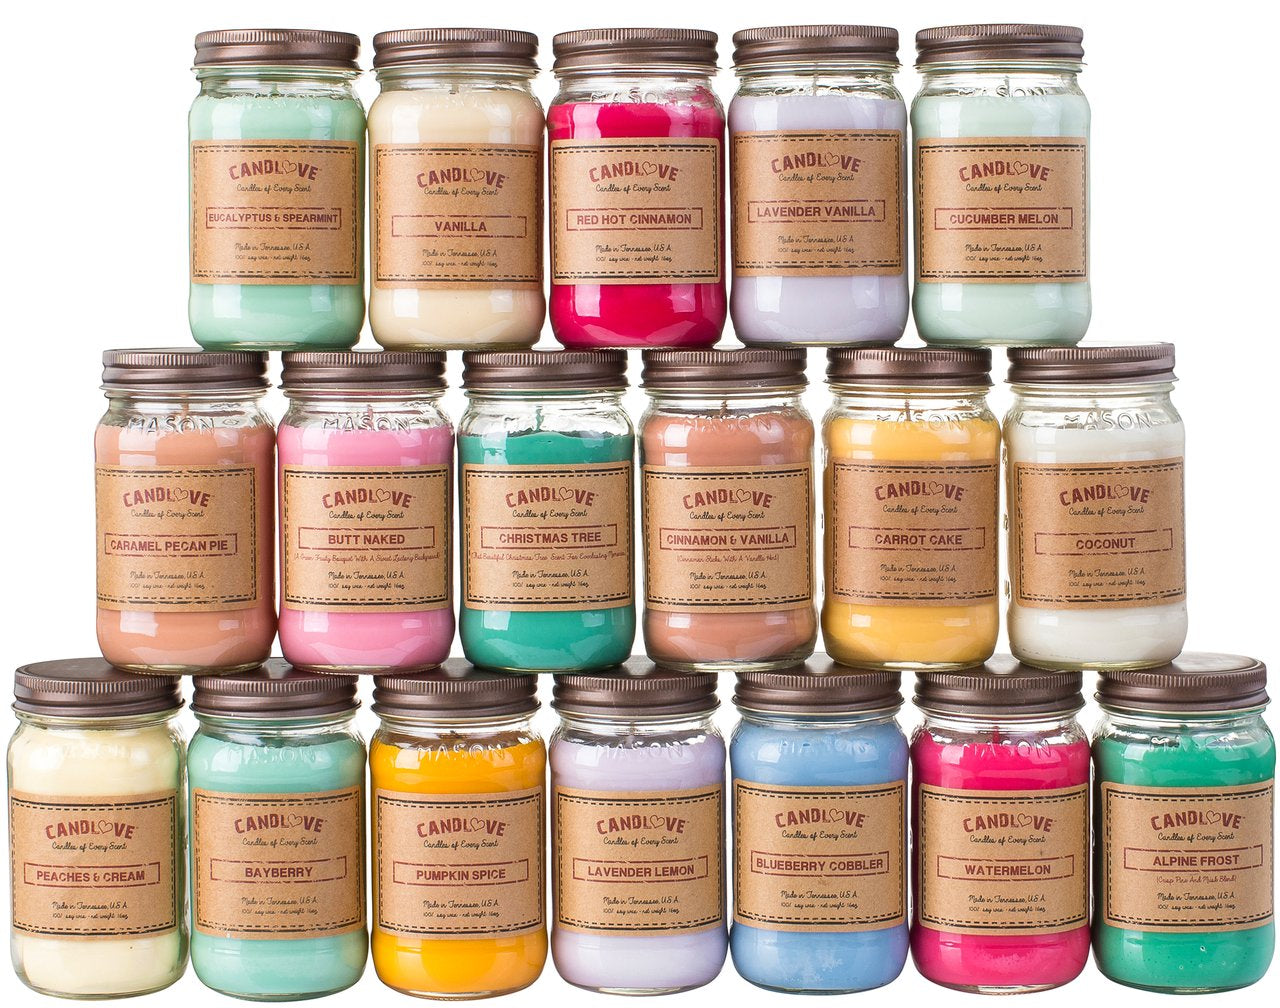 Fall Sale! Buy any 5 candles get one FREE!